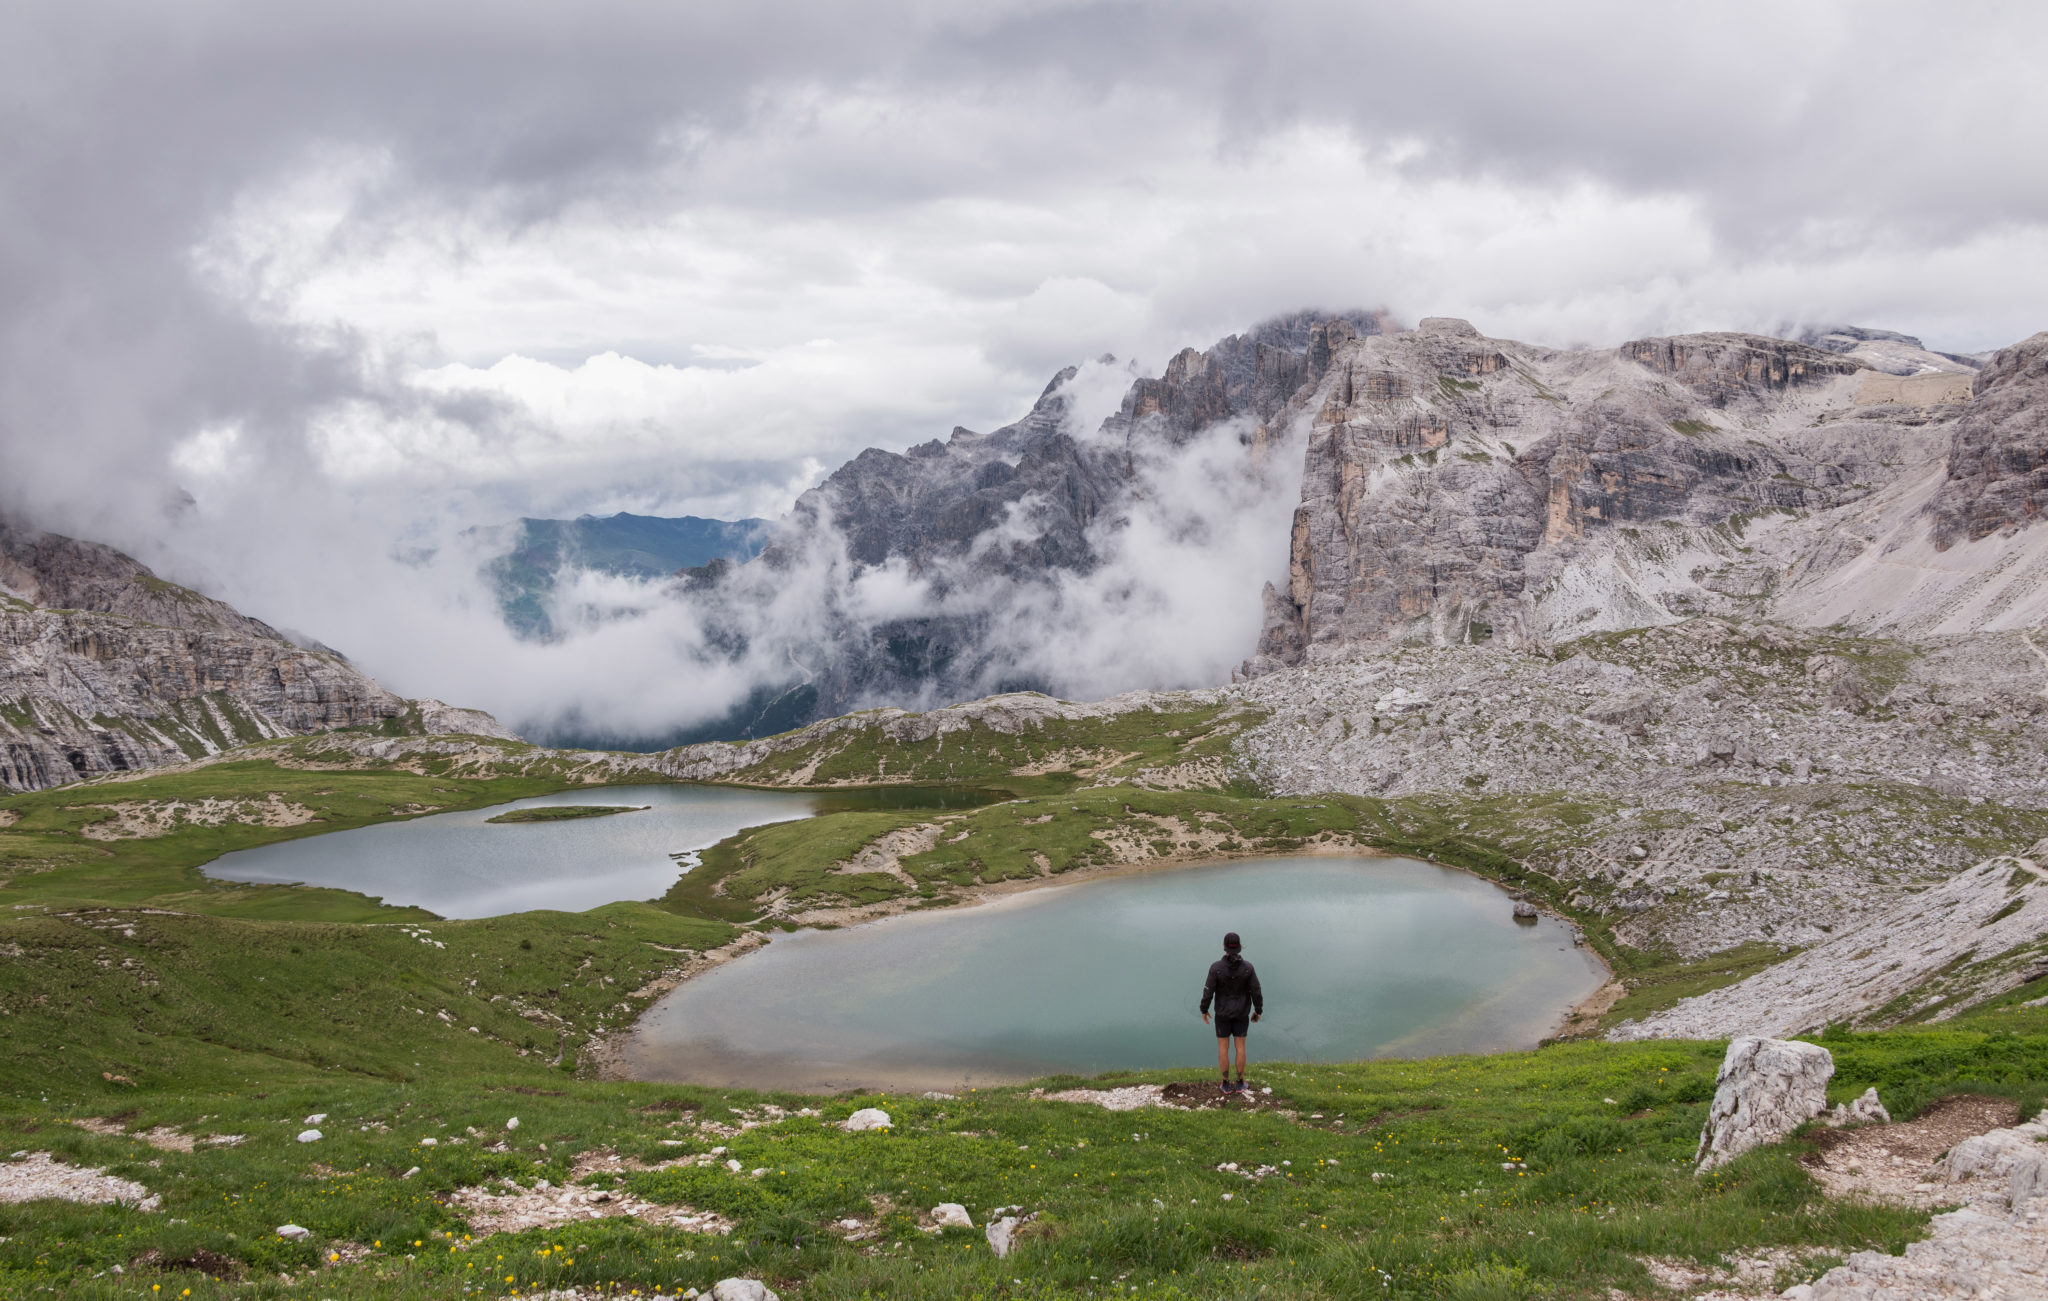 Male hiker in the Italian Dolomites Mountains